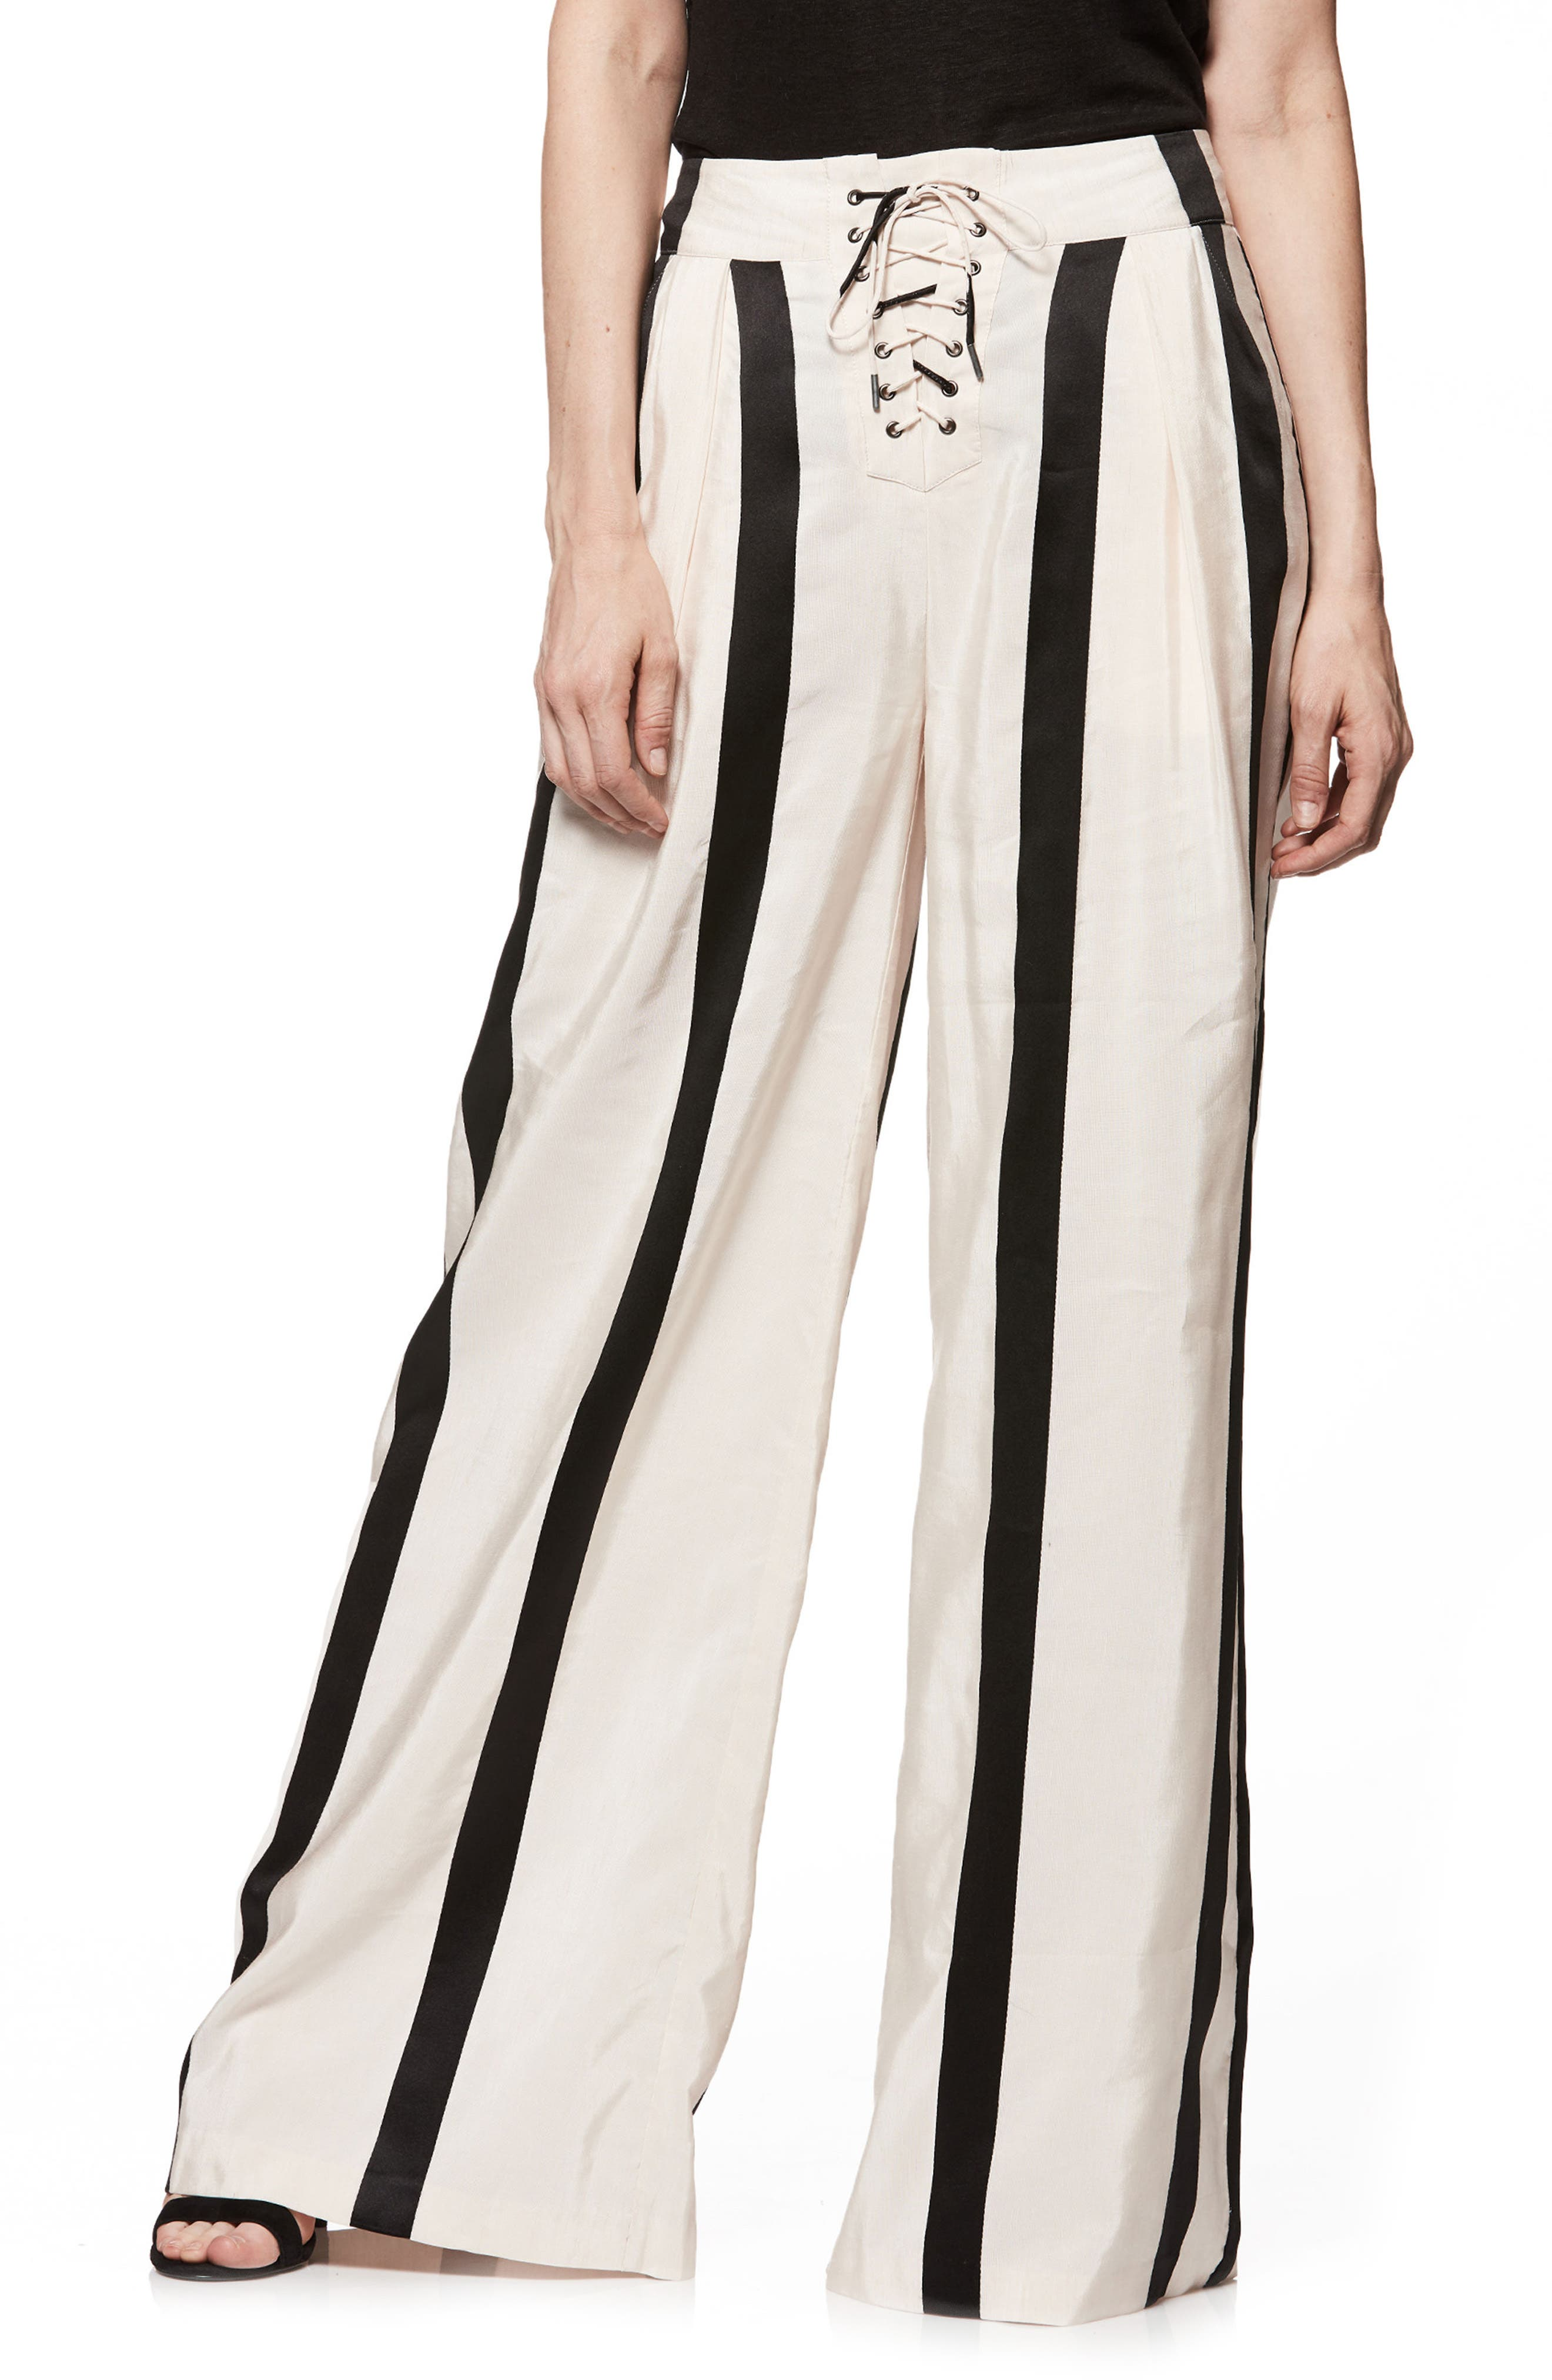 Capucine High Waist Wide Leg Pants,                             Main thumbnail 1, color,                             Blush With Black